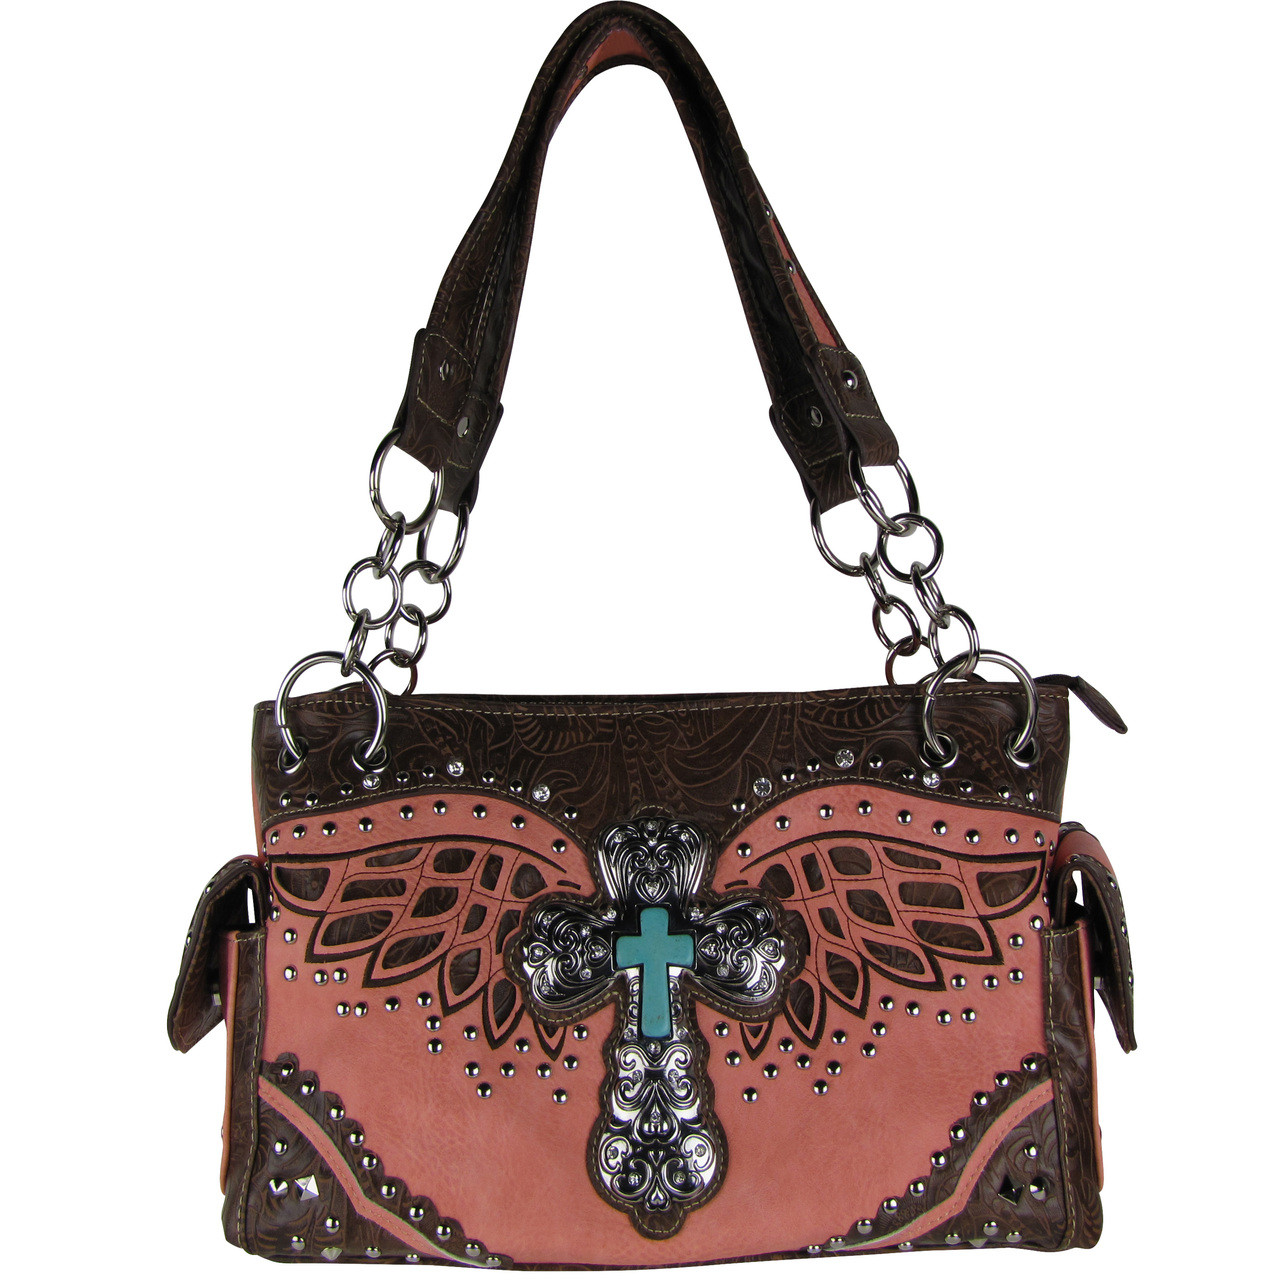 PINK WESTERN CROSS WITH WINGS LOOK SHOULDER HANDBAG HB1-52LCRPNK